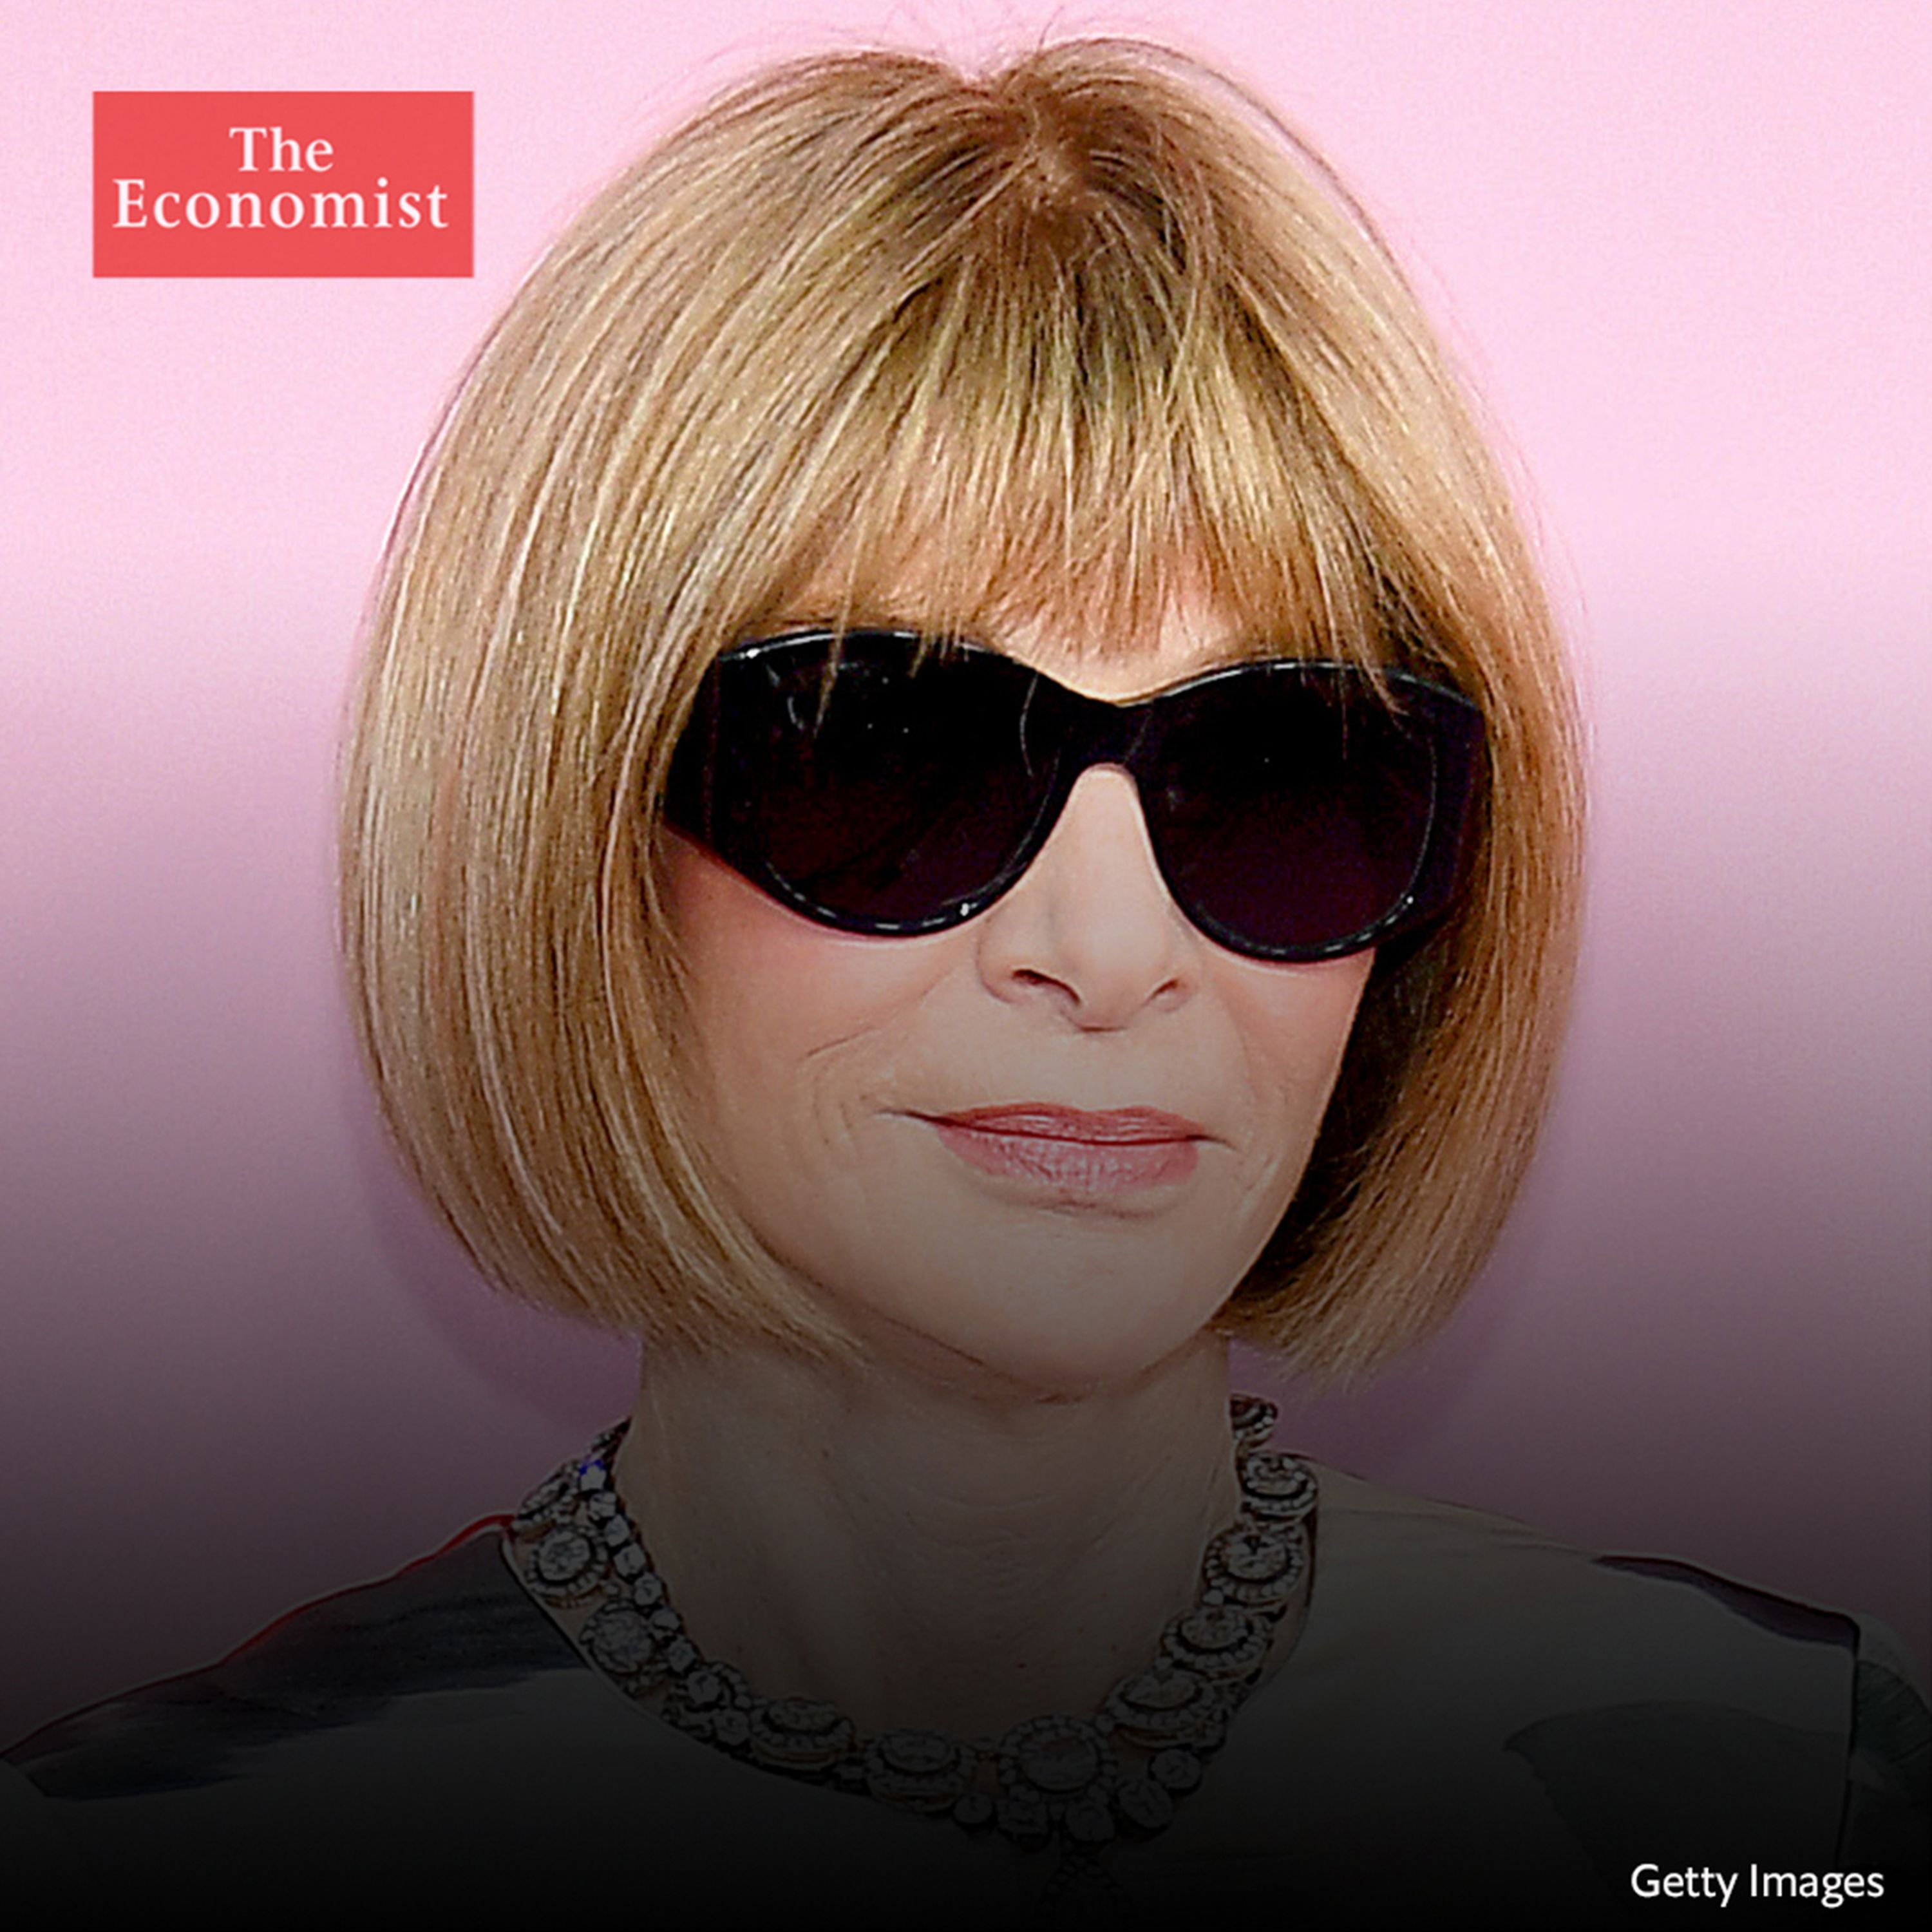 The Economist asks: Anna Wintour